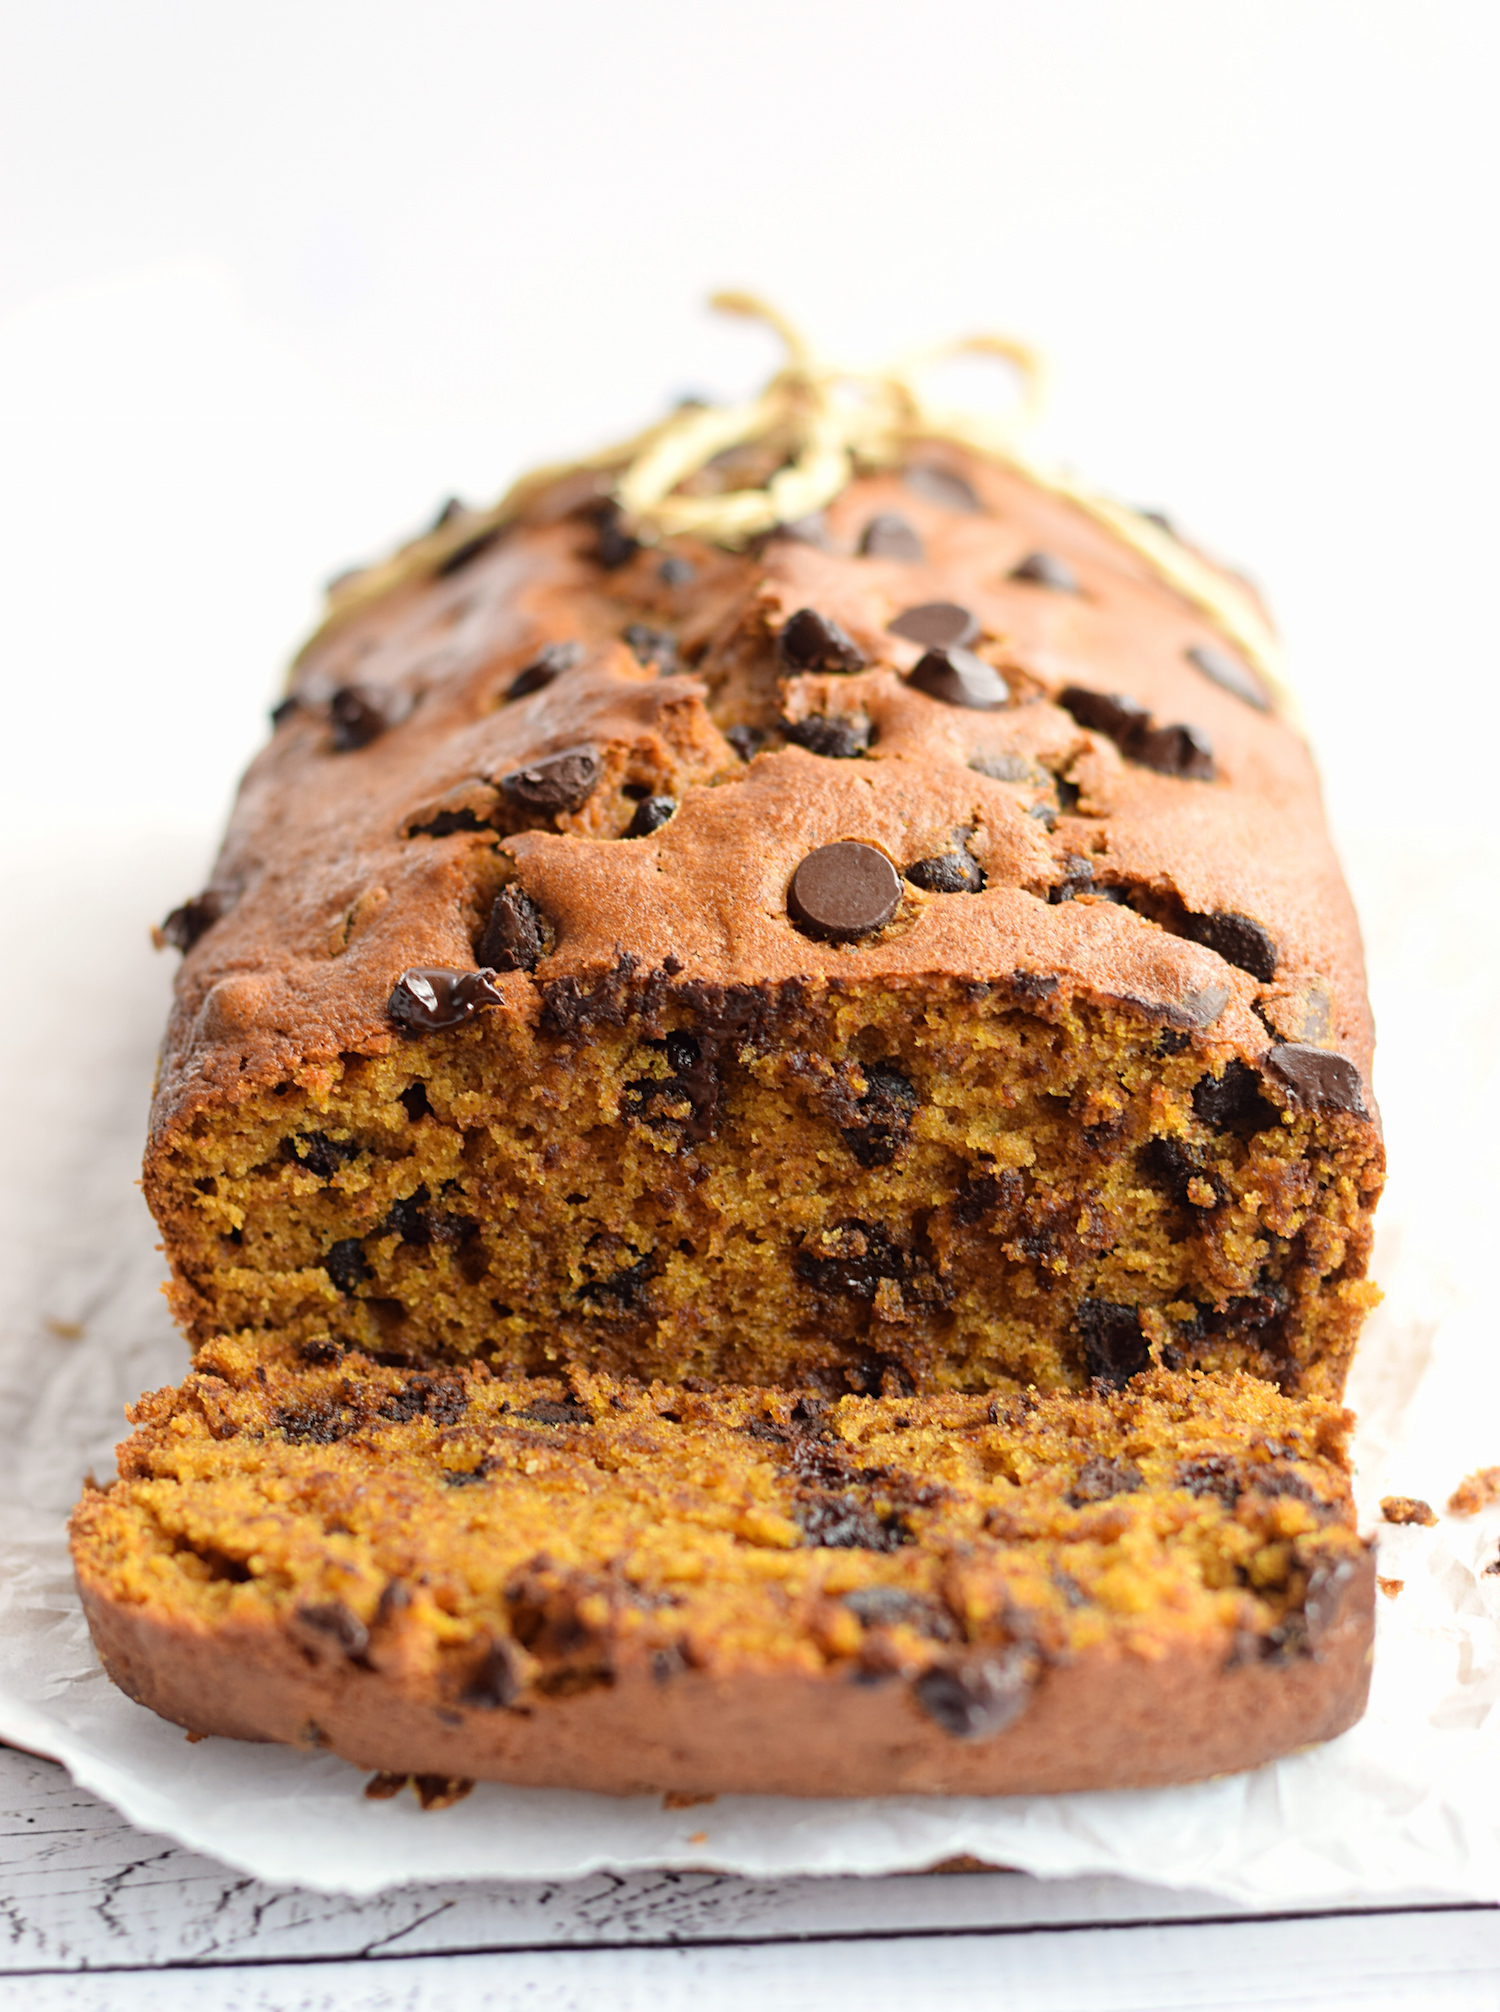 The BEST Pumpkin Chocolate Chip Bread – moist, tender, flavorful pumpkin bread loaded with chocolate chips. So easy and perfect for fall!   trufflesandtrends.com